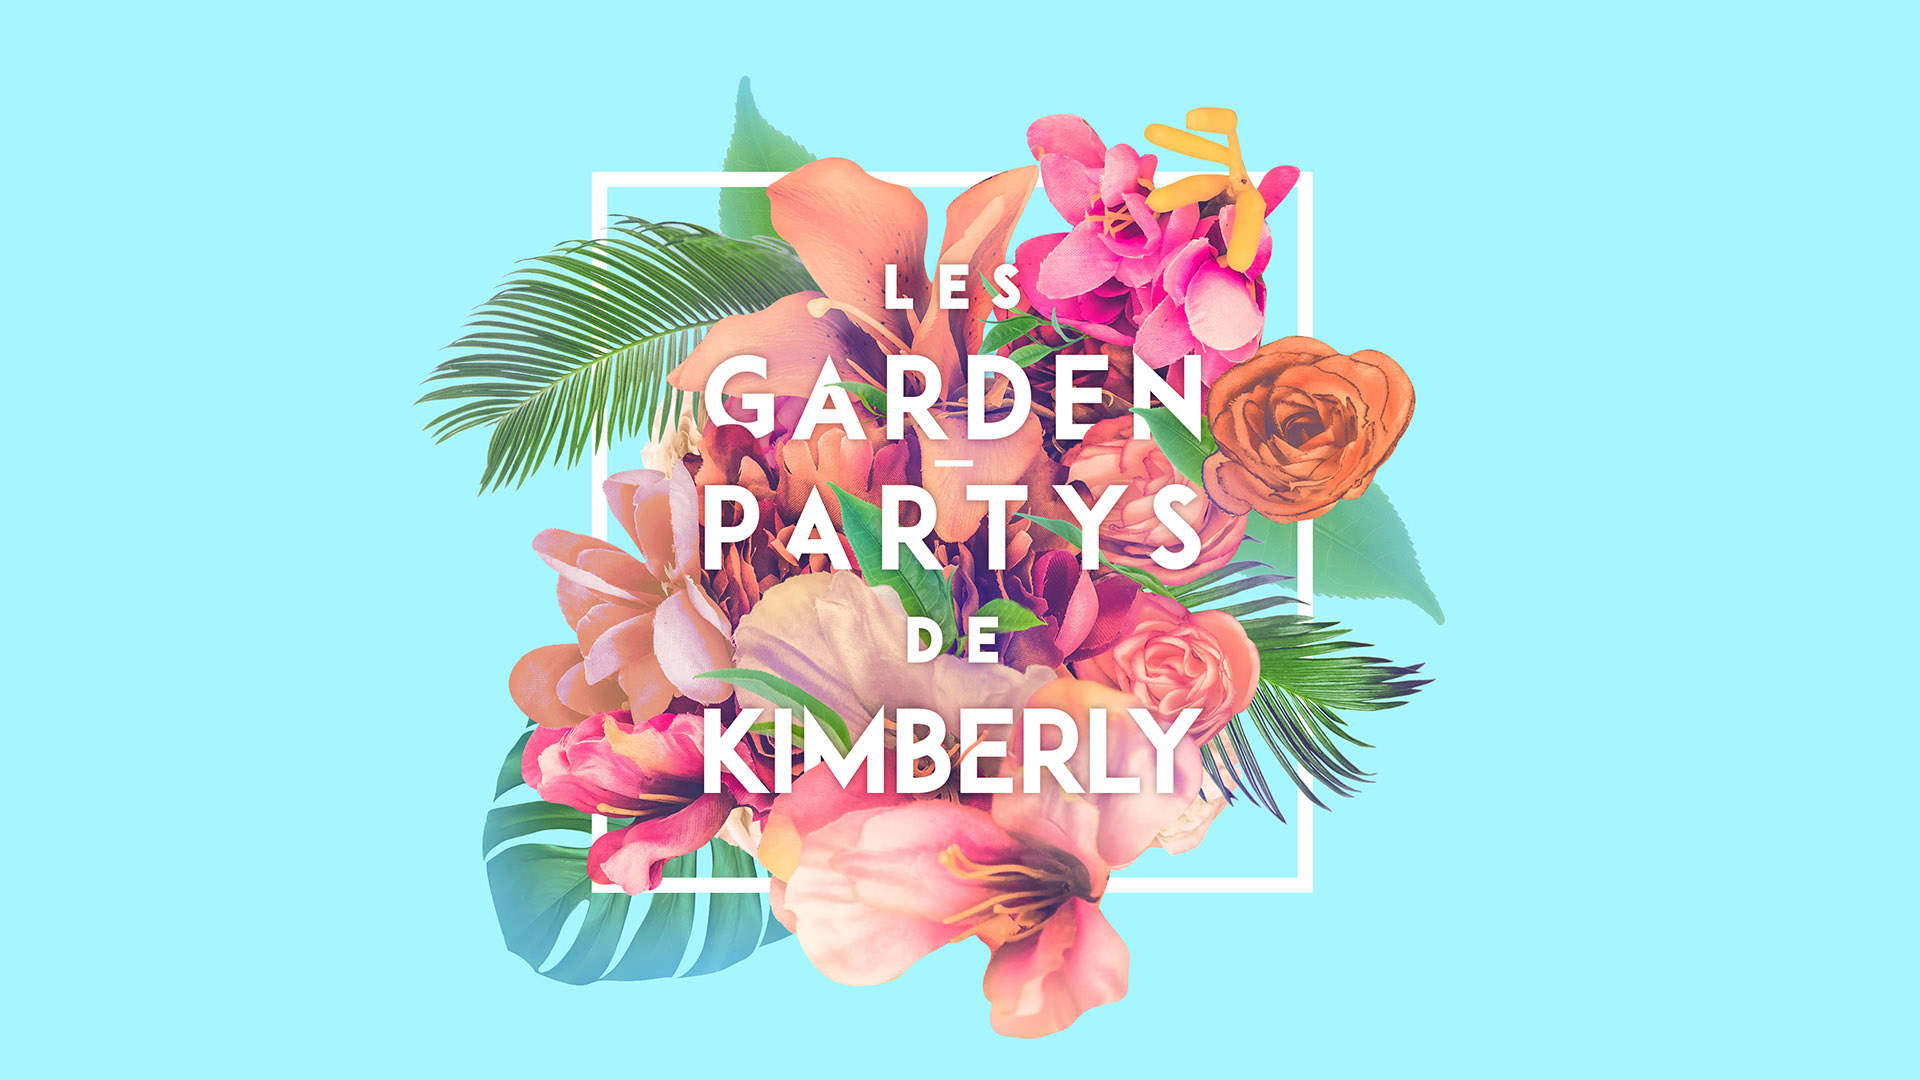 Les garden party de Kimberly